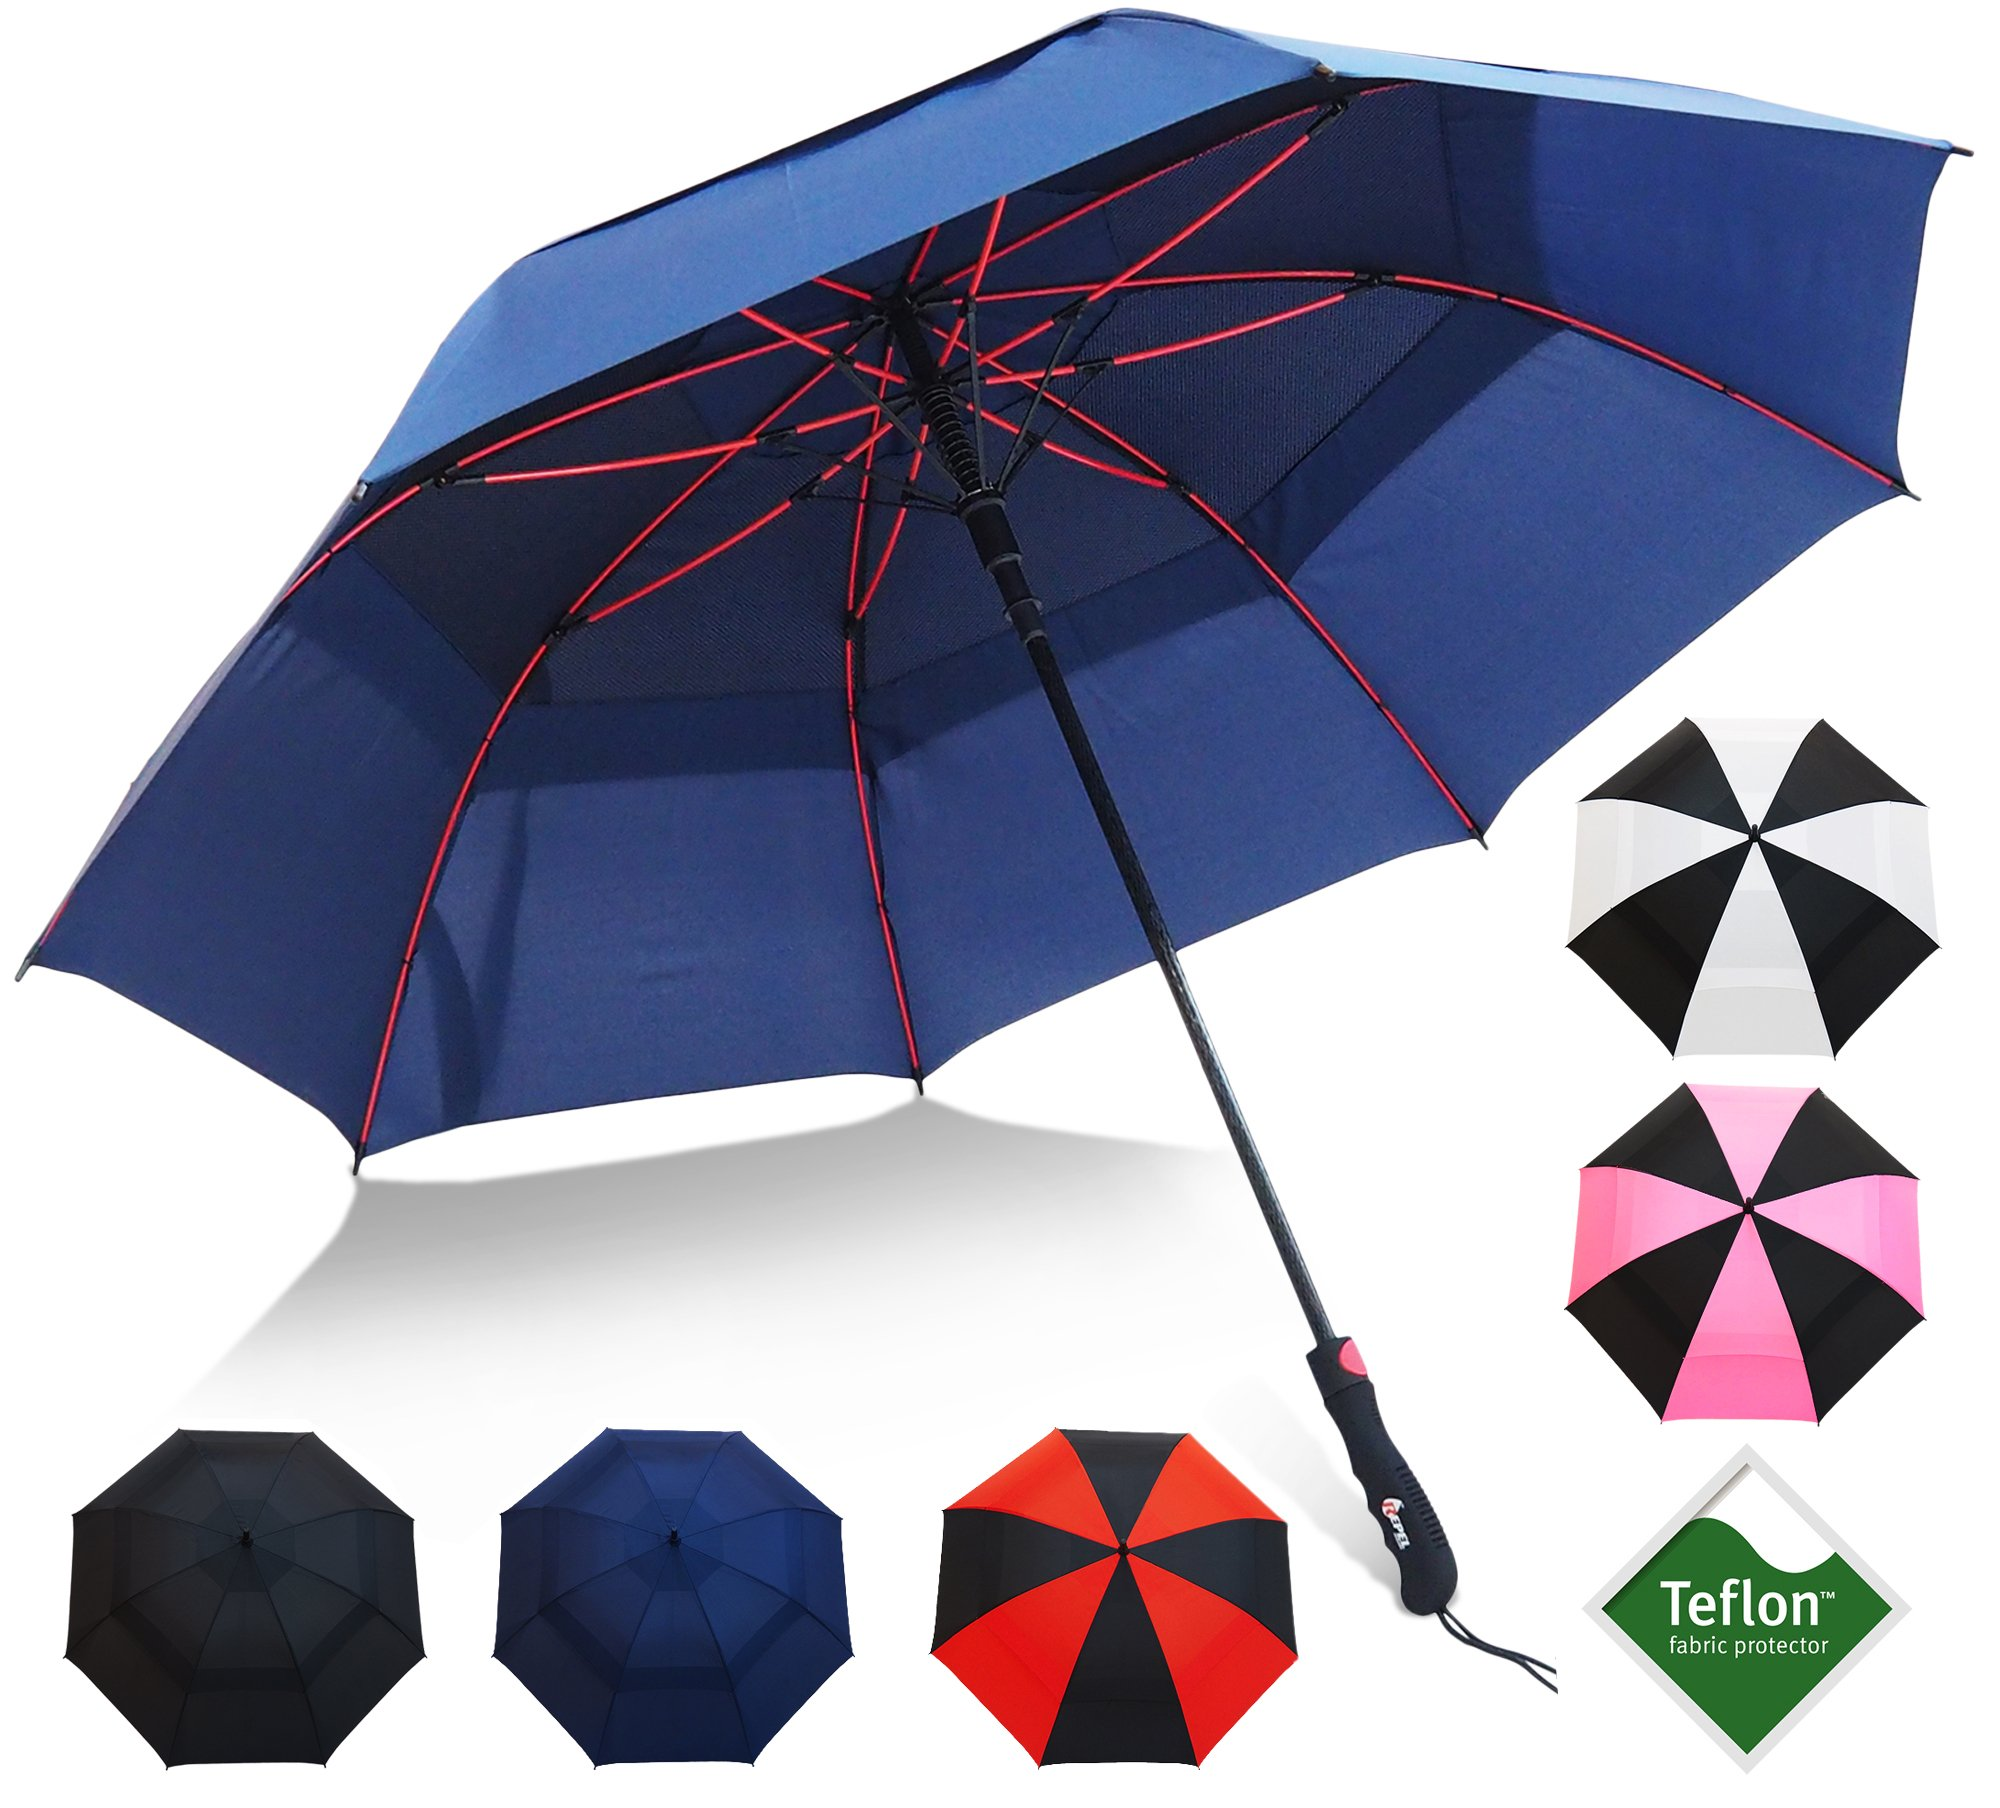 Golf Umbrella by Repel with Triple Layered Reinforced Fiberglass Ribs Adorned in Red Paint, 60'' Vented Double Canopy with Teflon Coating, Auto Open (Navy Blue)